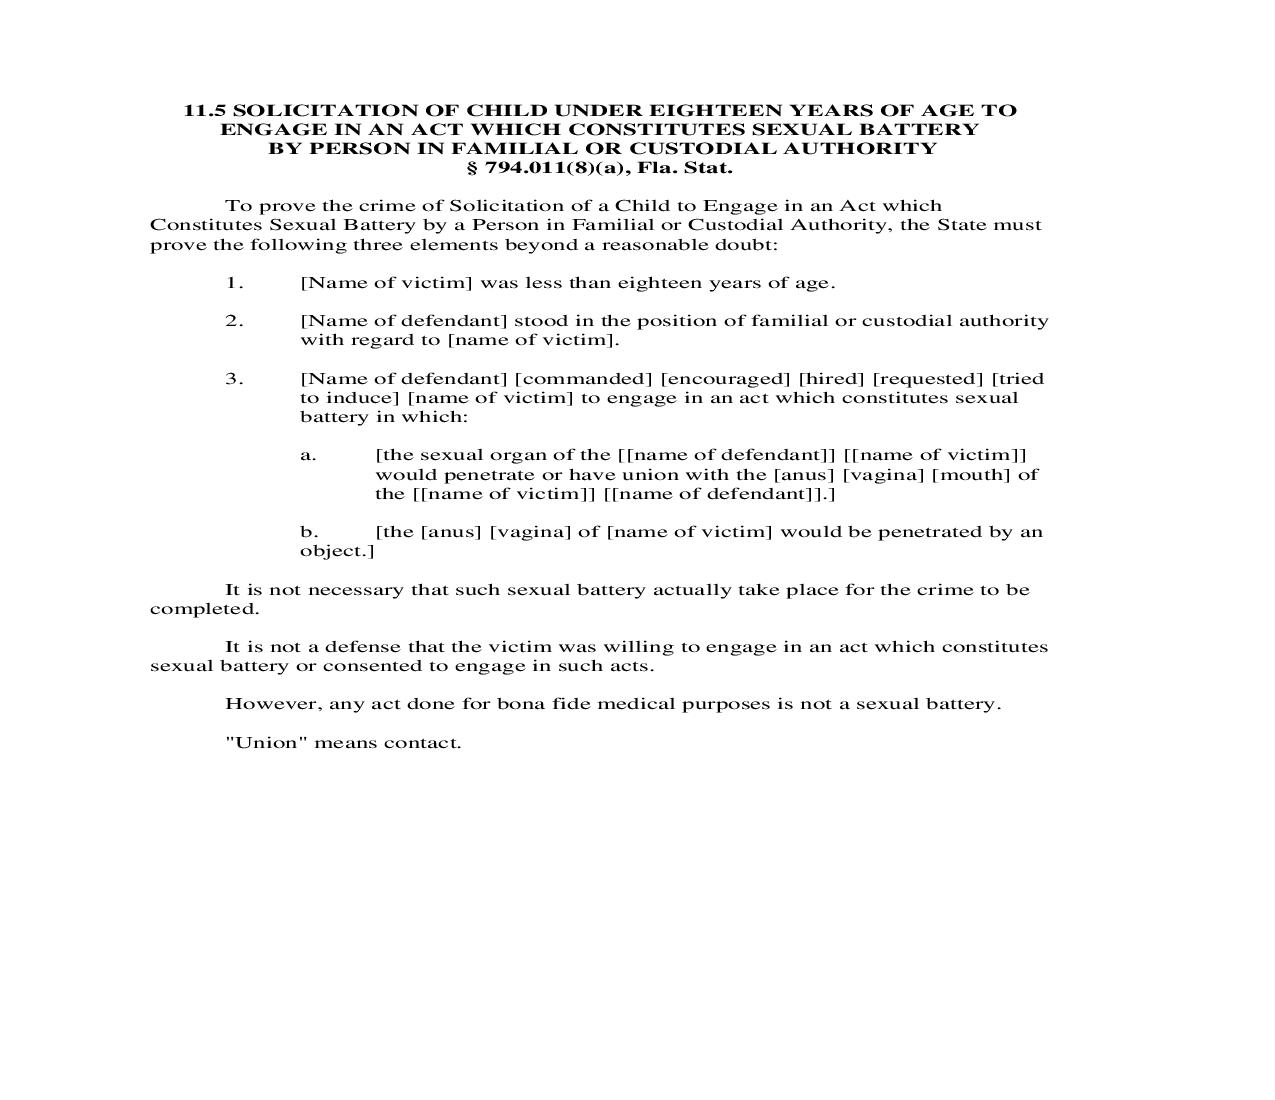 11.5. Solicitation Of Child Under Eighteen Years Of Age To Engage In An Act Which Constitutes Sexual Battery By Person In Familial Or Custodial Authority   Pdf Doc Docx   Florida_JI